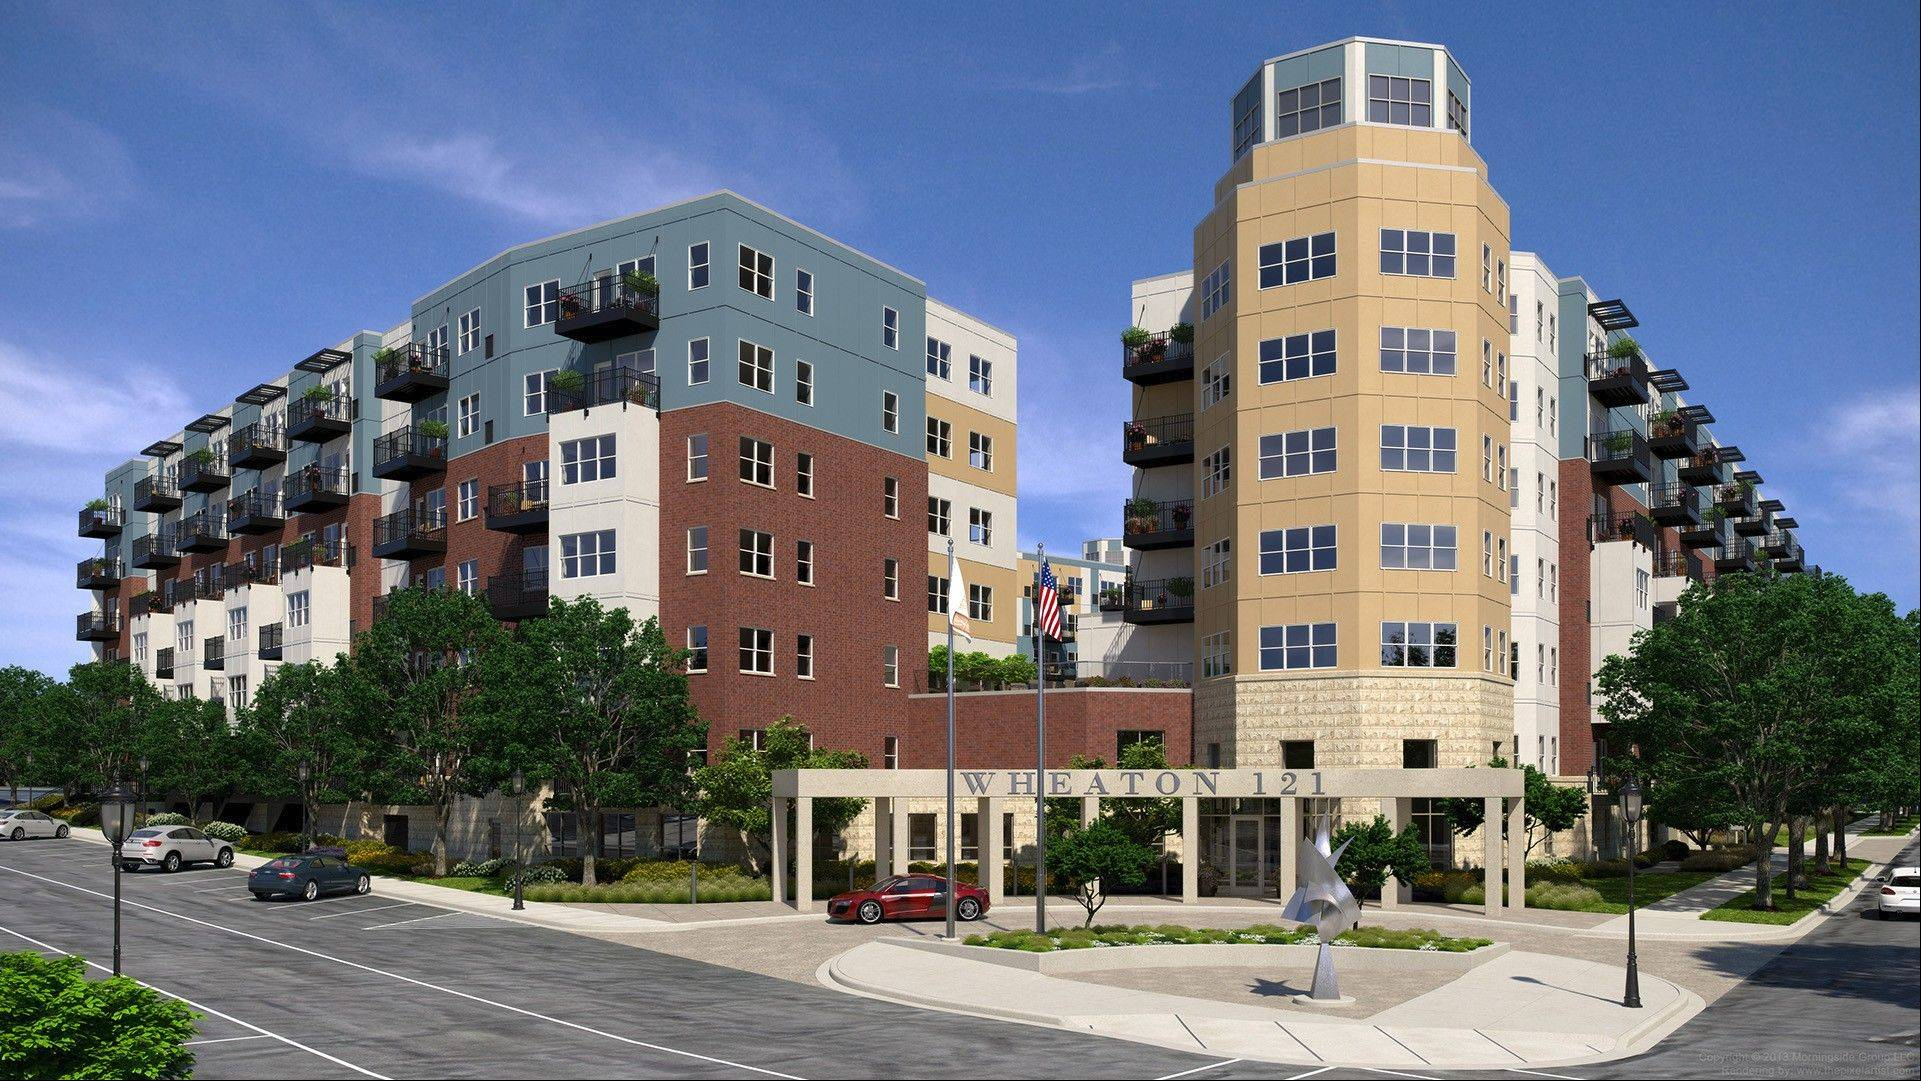 By next spring, the Wheaton 121 development will be a new addition to the downtown Wheaton skyline.